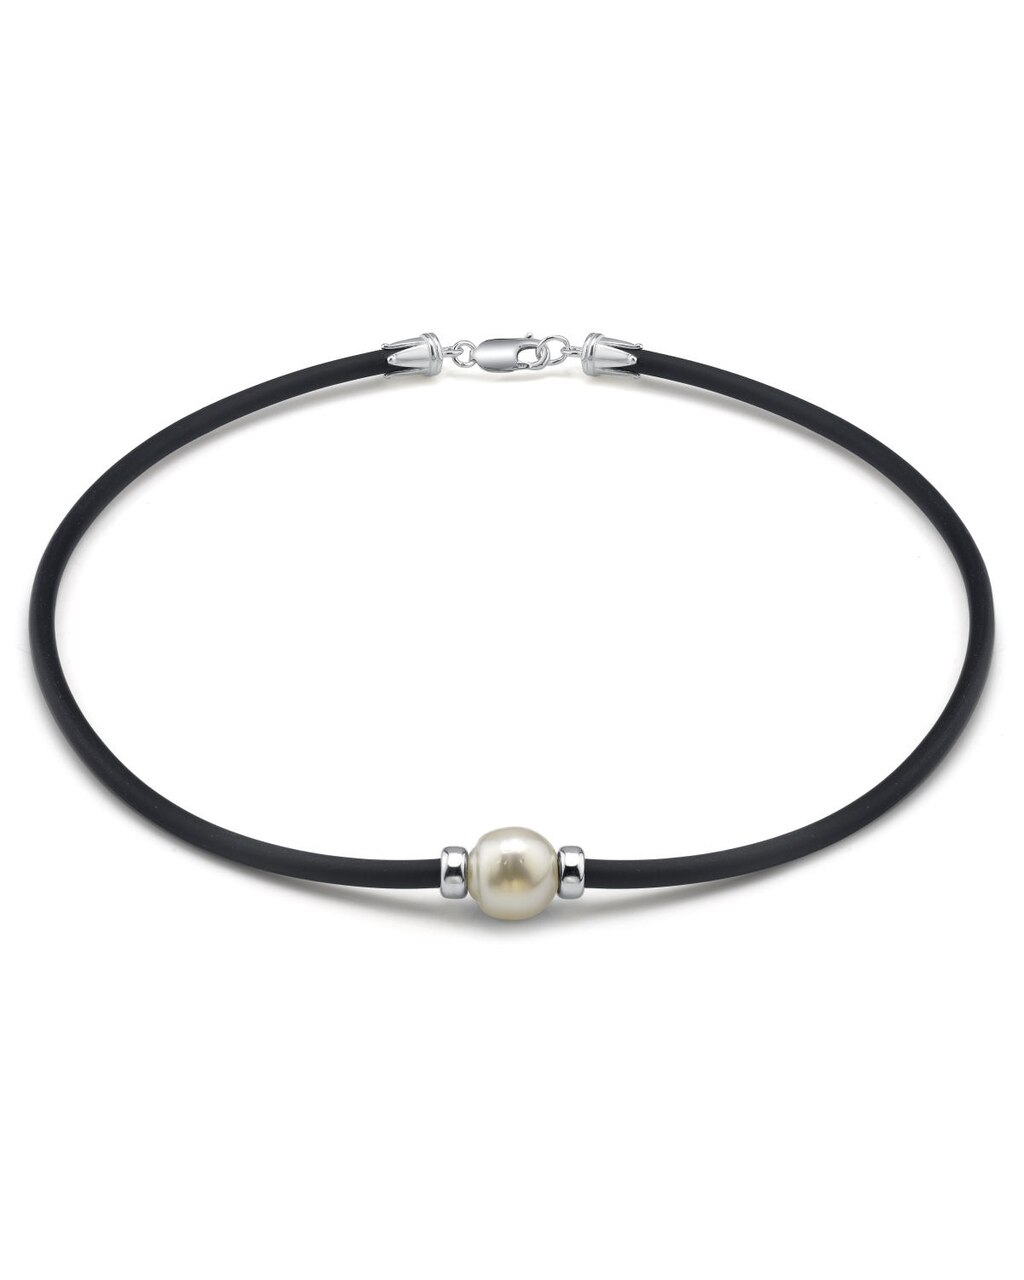 This beautiful necklace features a baroque shaped White South Sea pearl